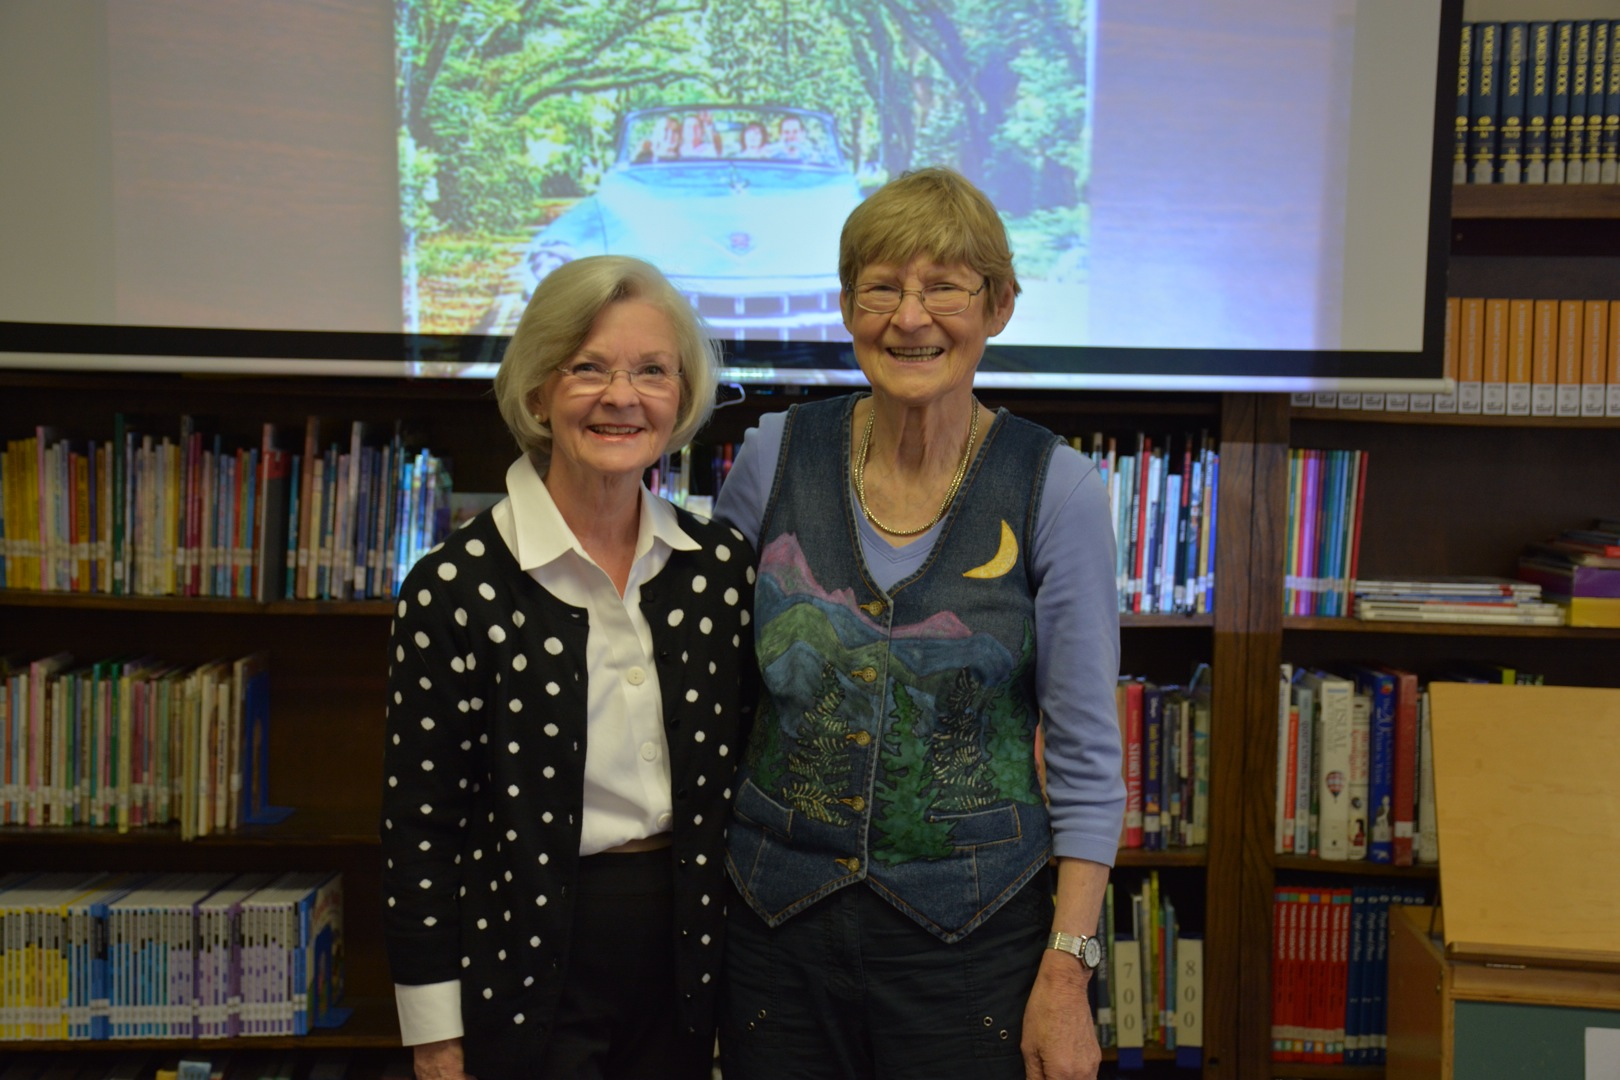 Alabama First Lady Dianne Bentley and author Faye Gibbons (Halley)